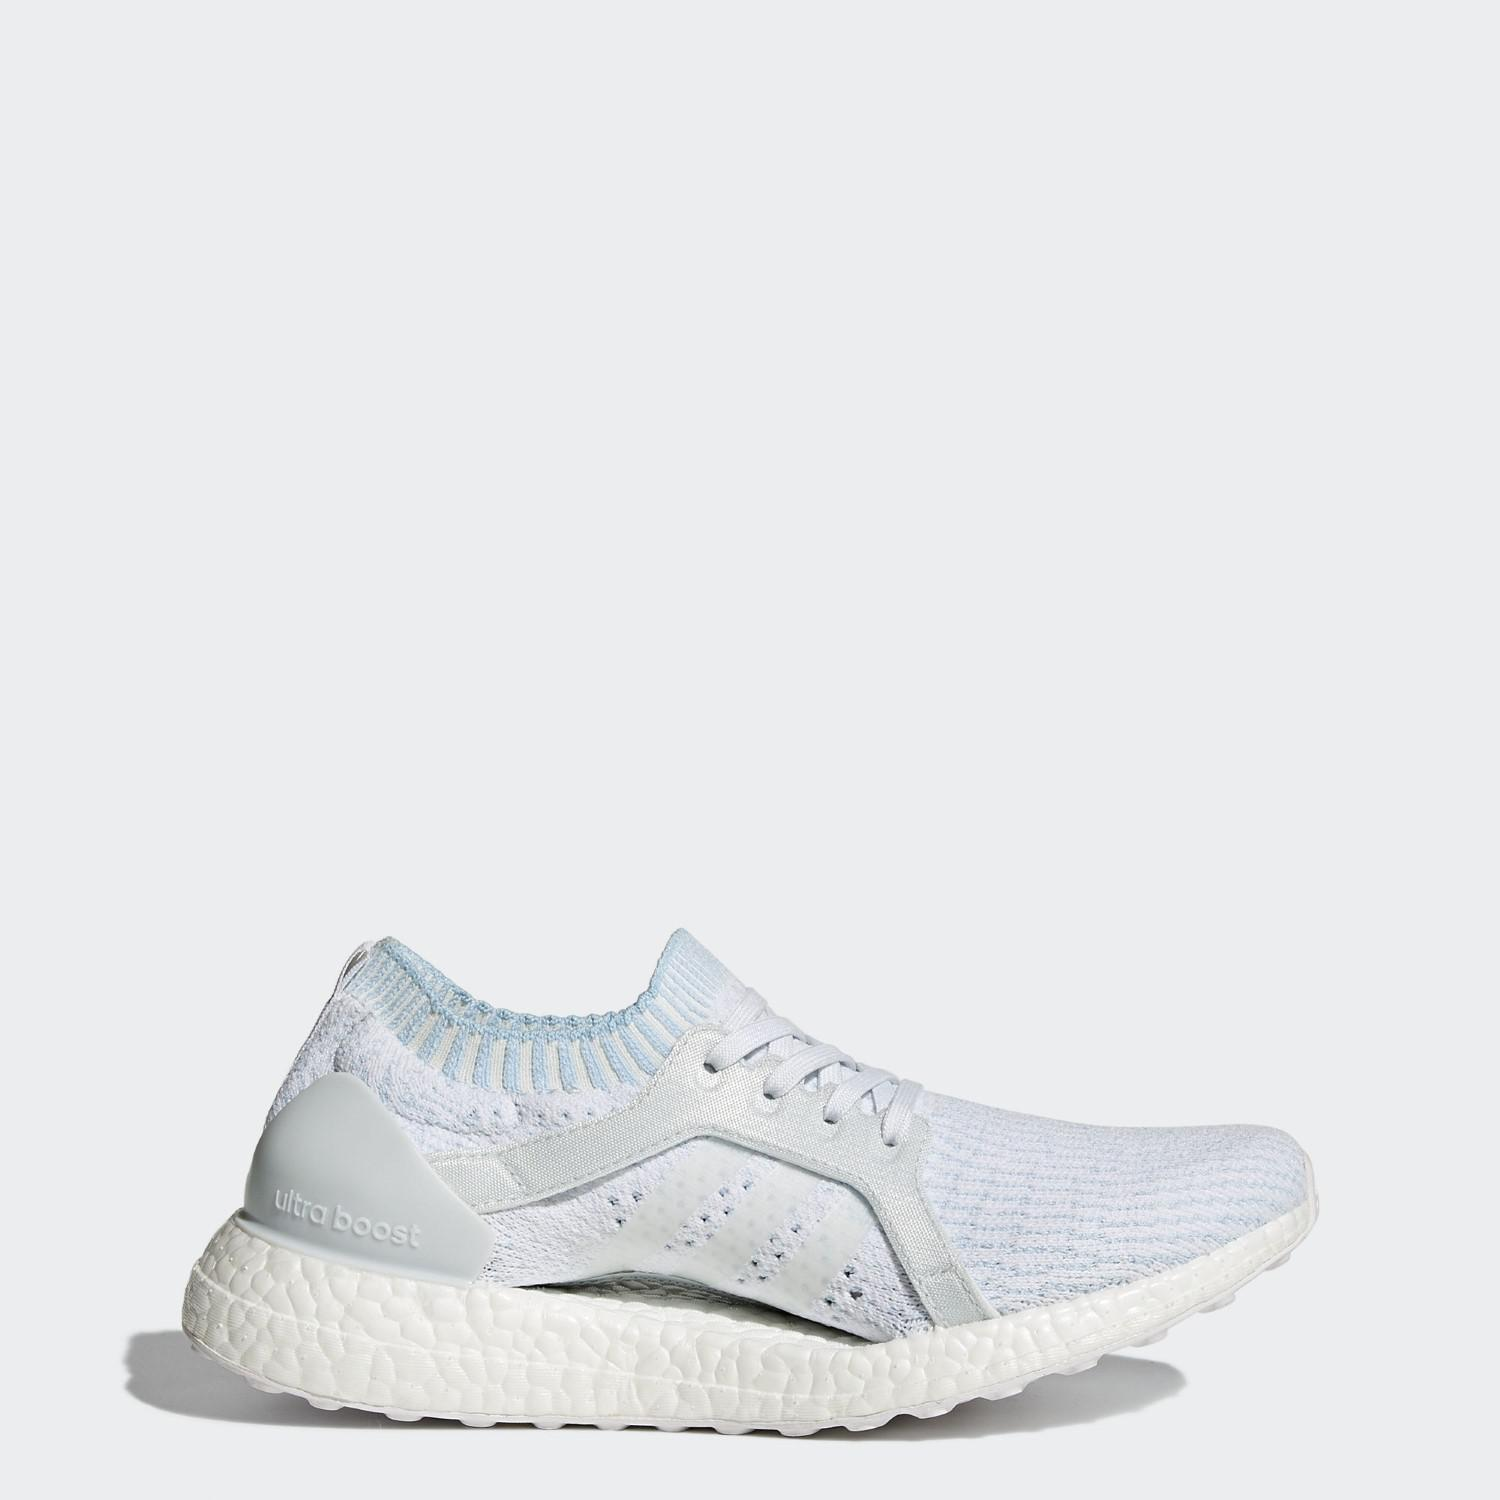 bd09c8740 ... cheap for discount adidas. Womens Blue Ultraboost X Parley Shoes ...